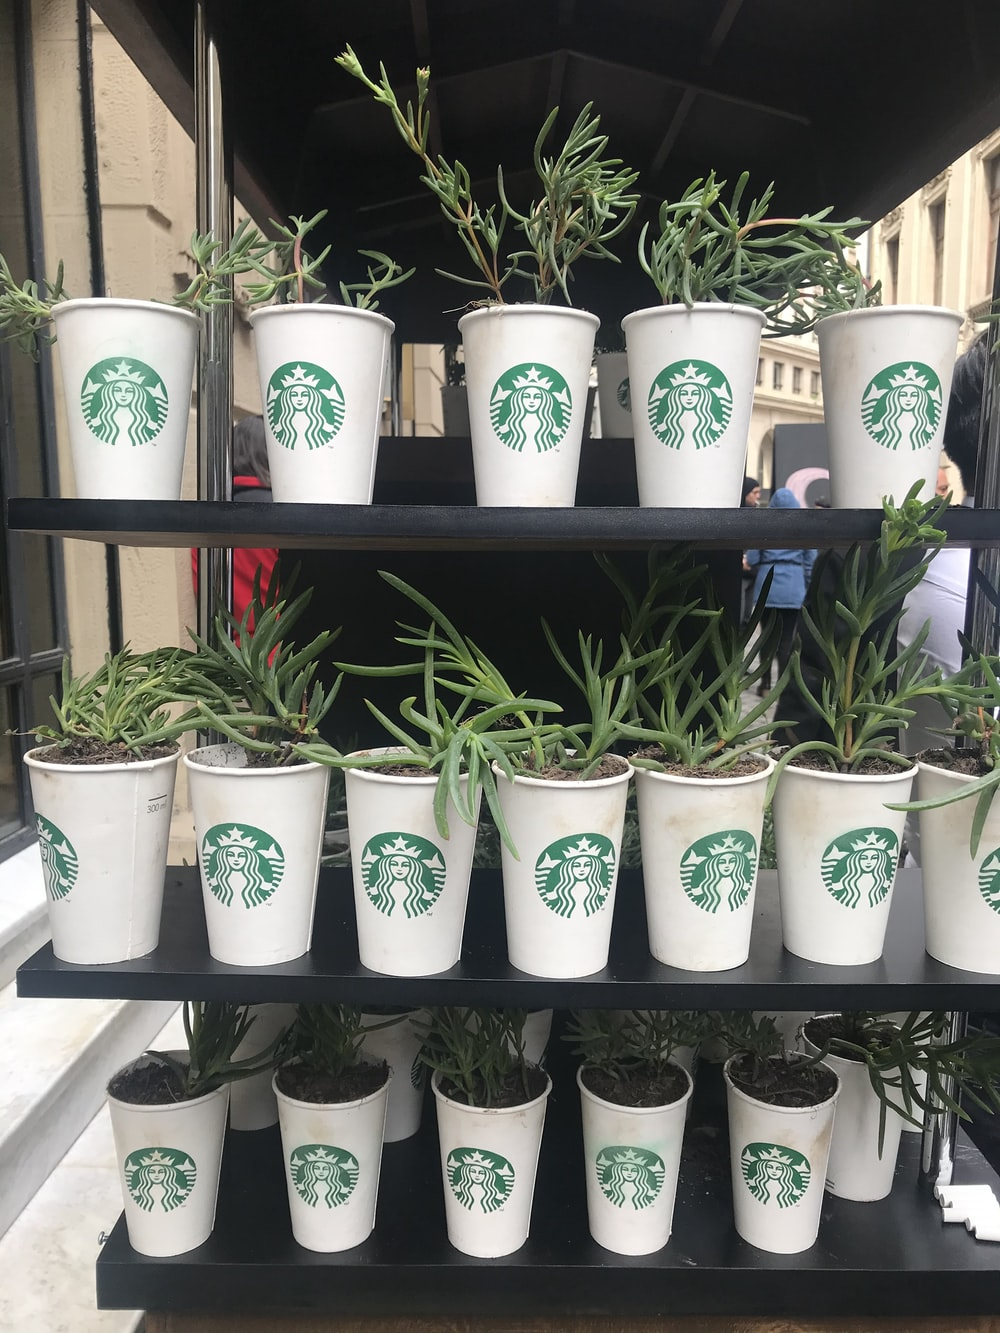 green plants planted on Starbucks cups